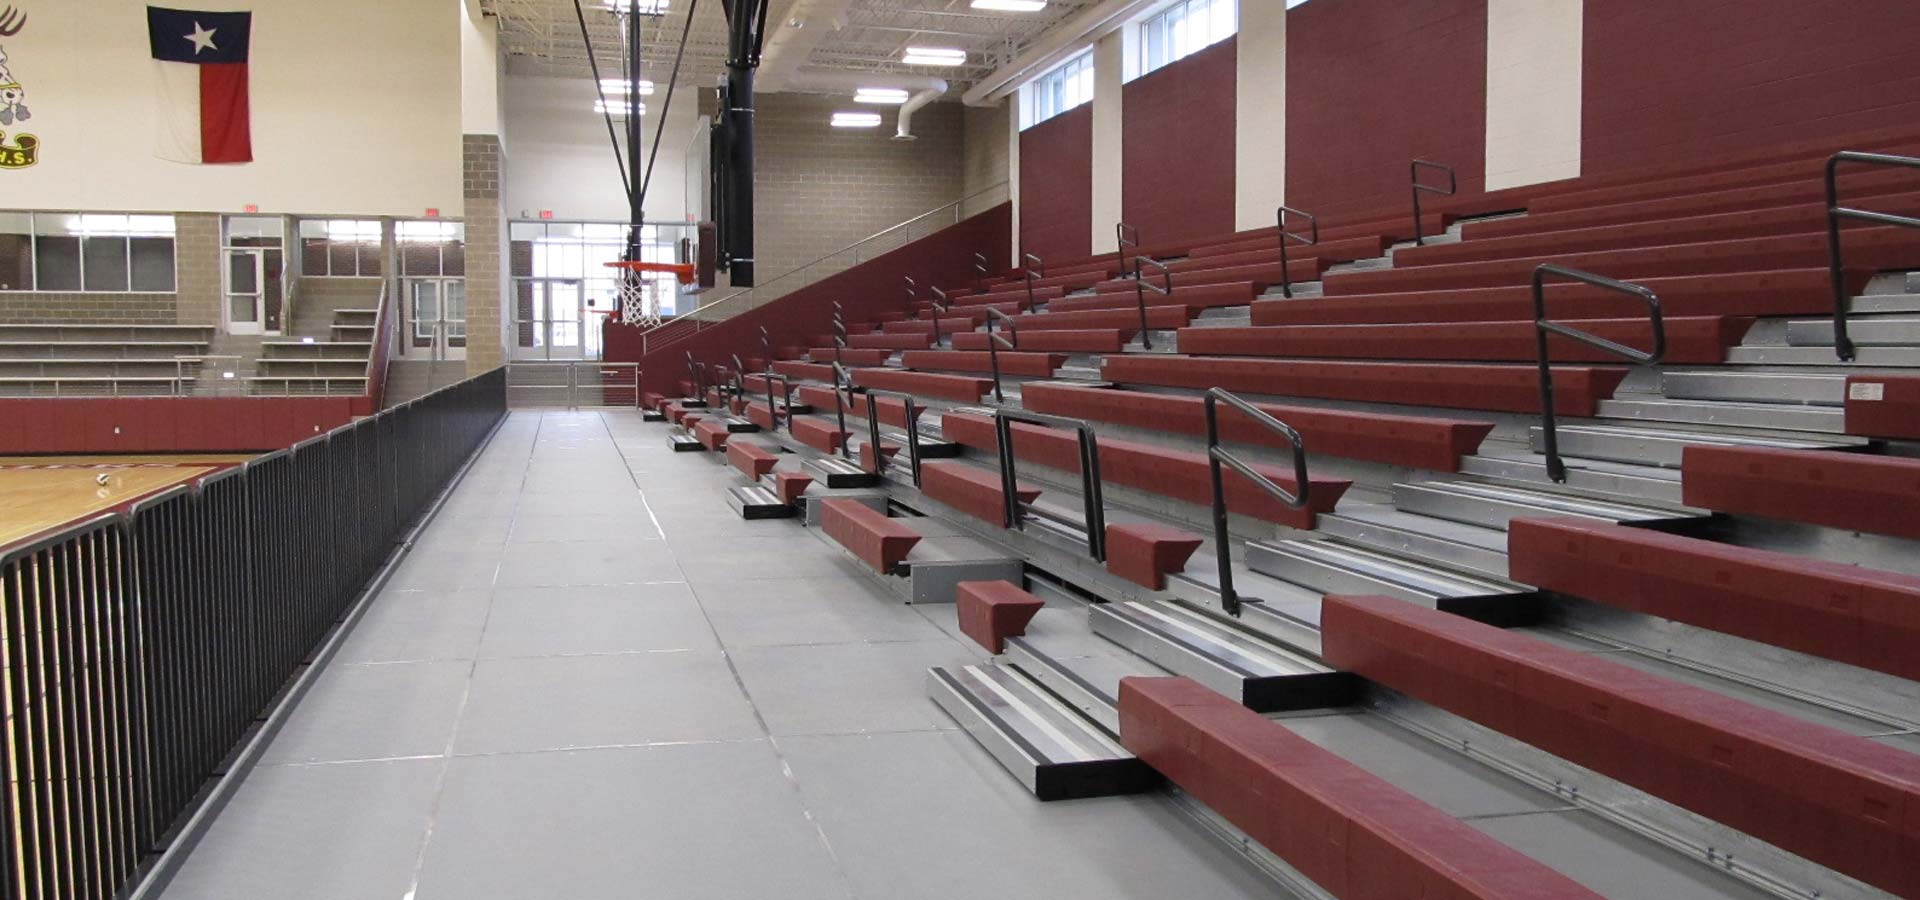 Texas Bleacher Repair